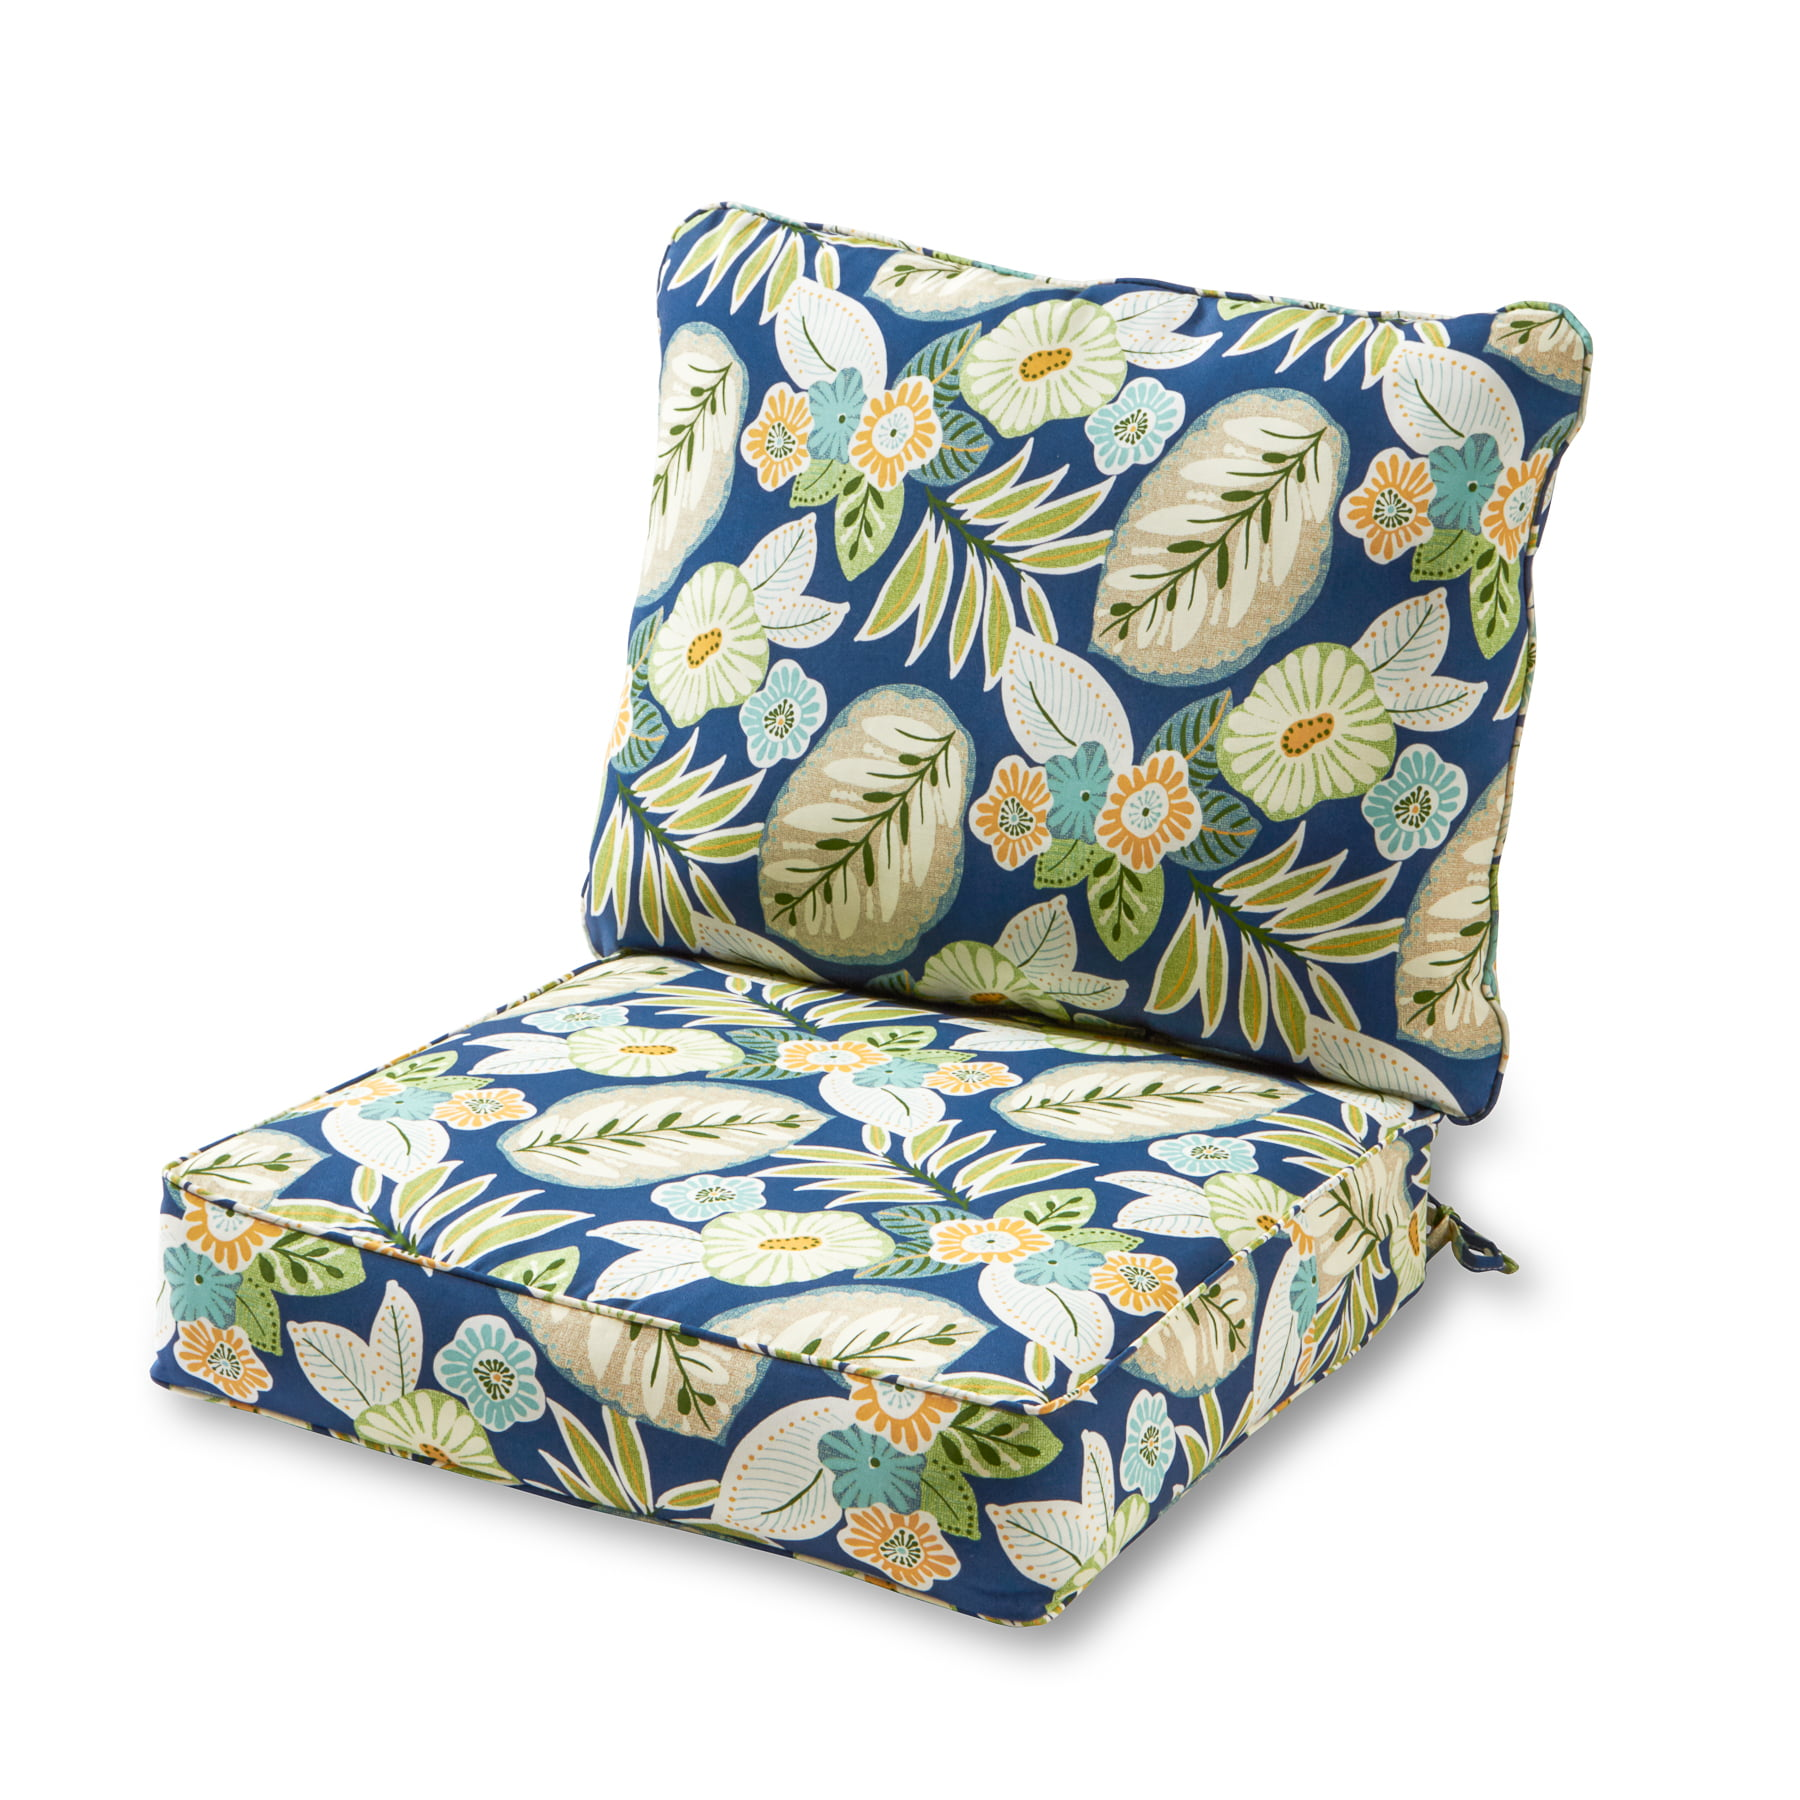 Greendale Home Fashions Marlow Floral Outdoor Deep Seat Cushion Set